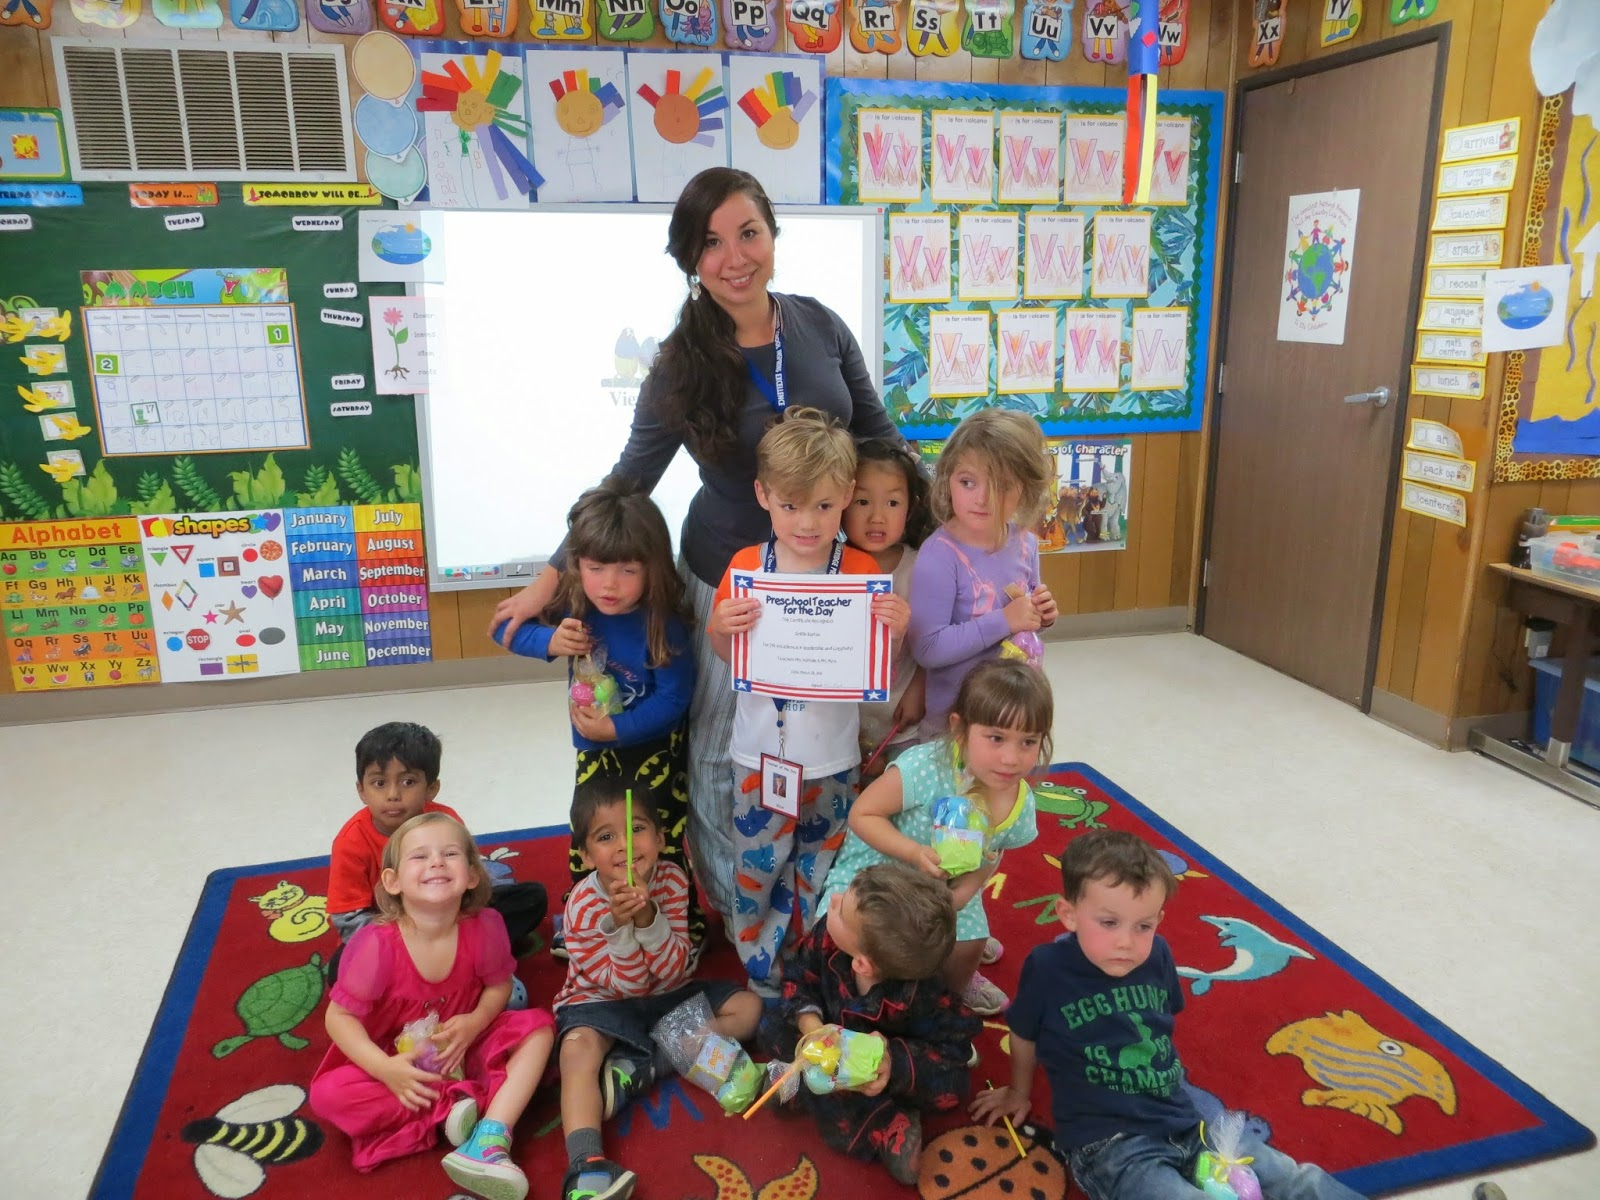 Preschool For Rookies Teacher Of The Day Theme Pajama Day